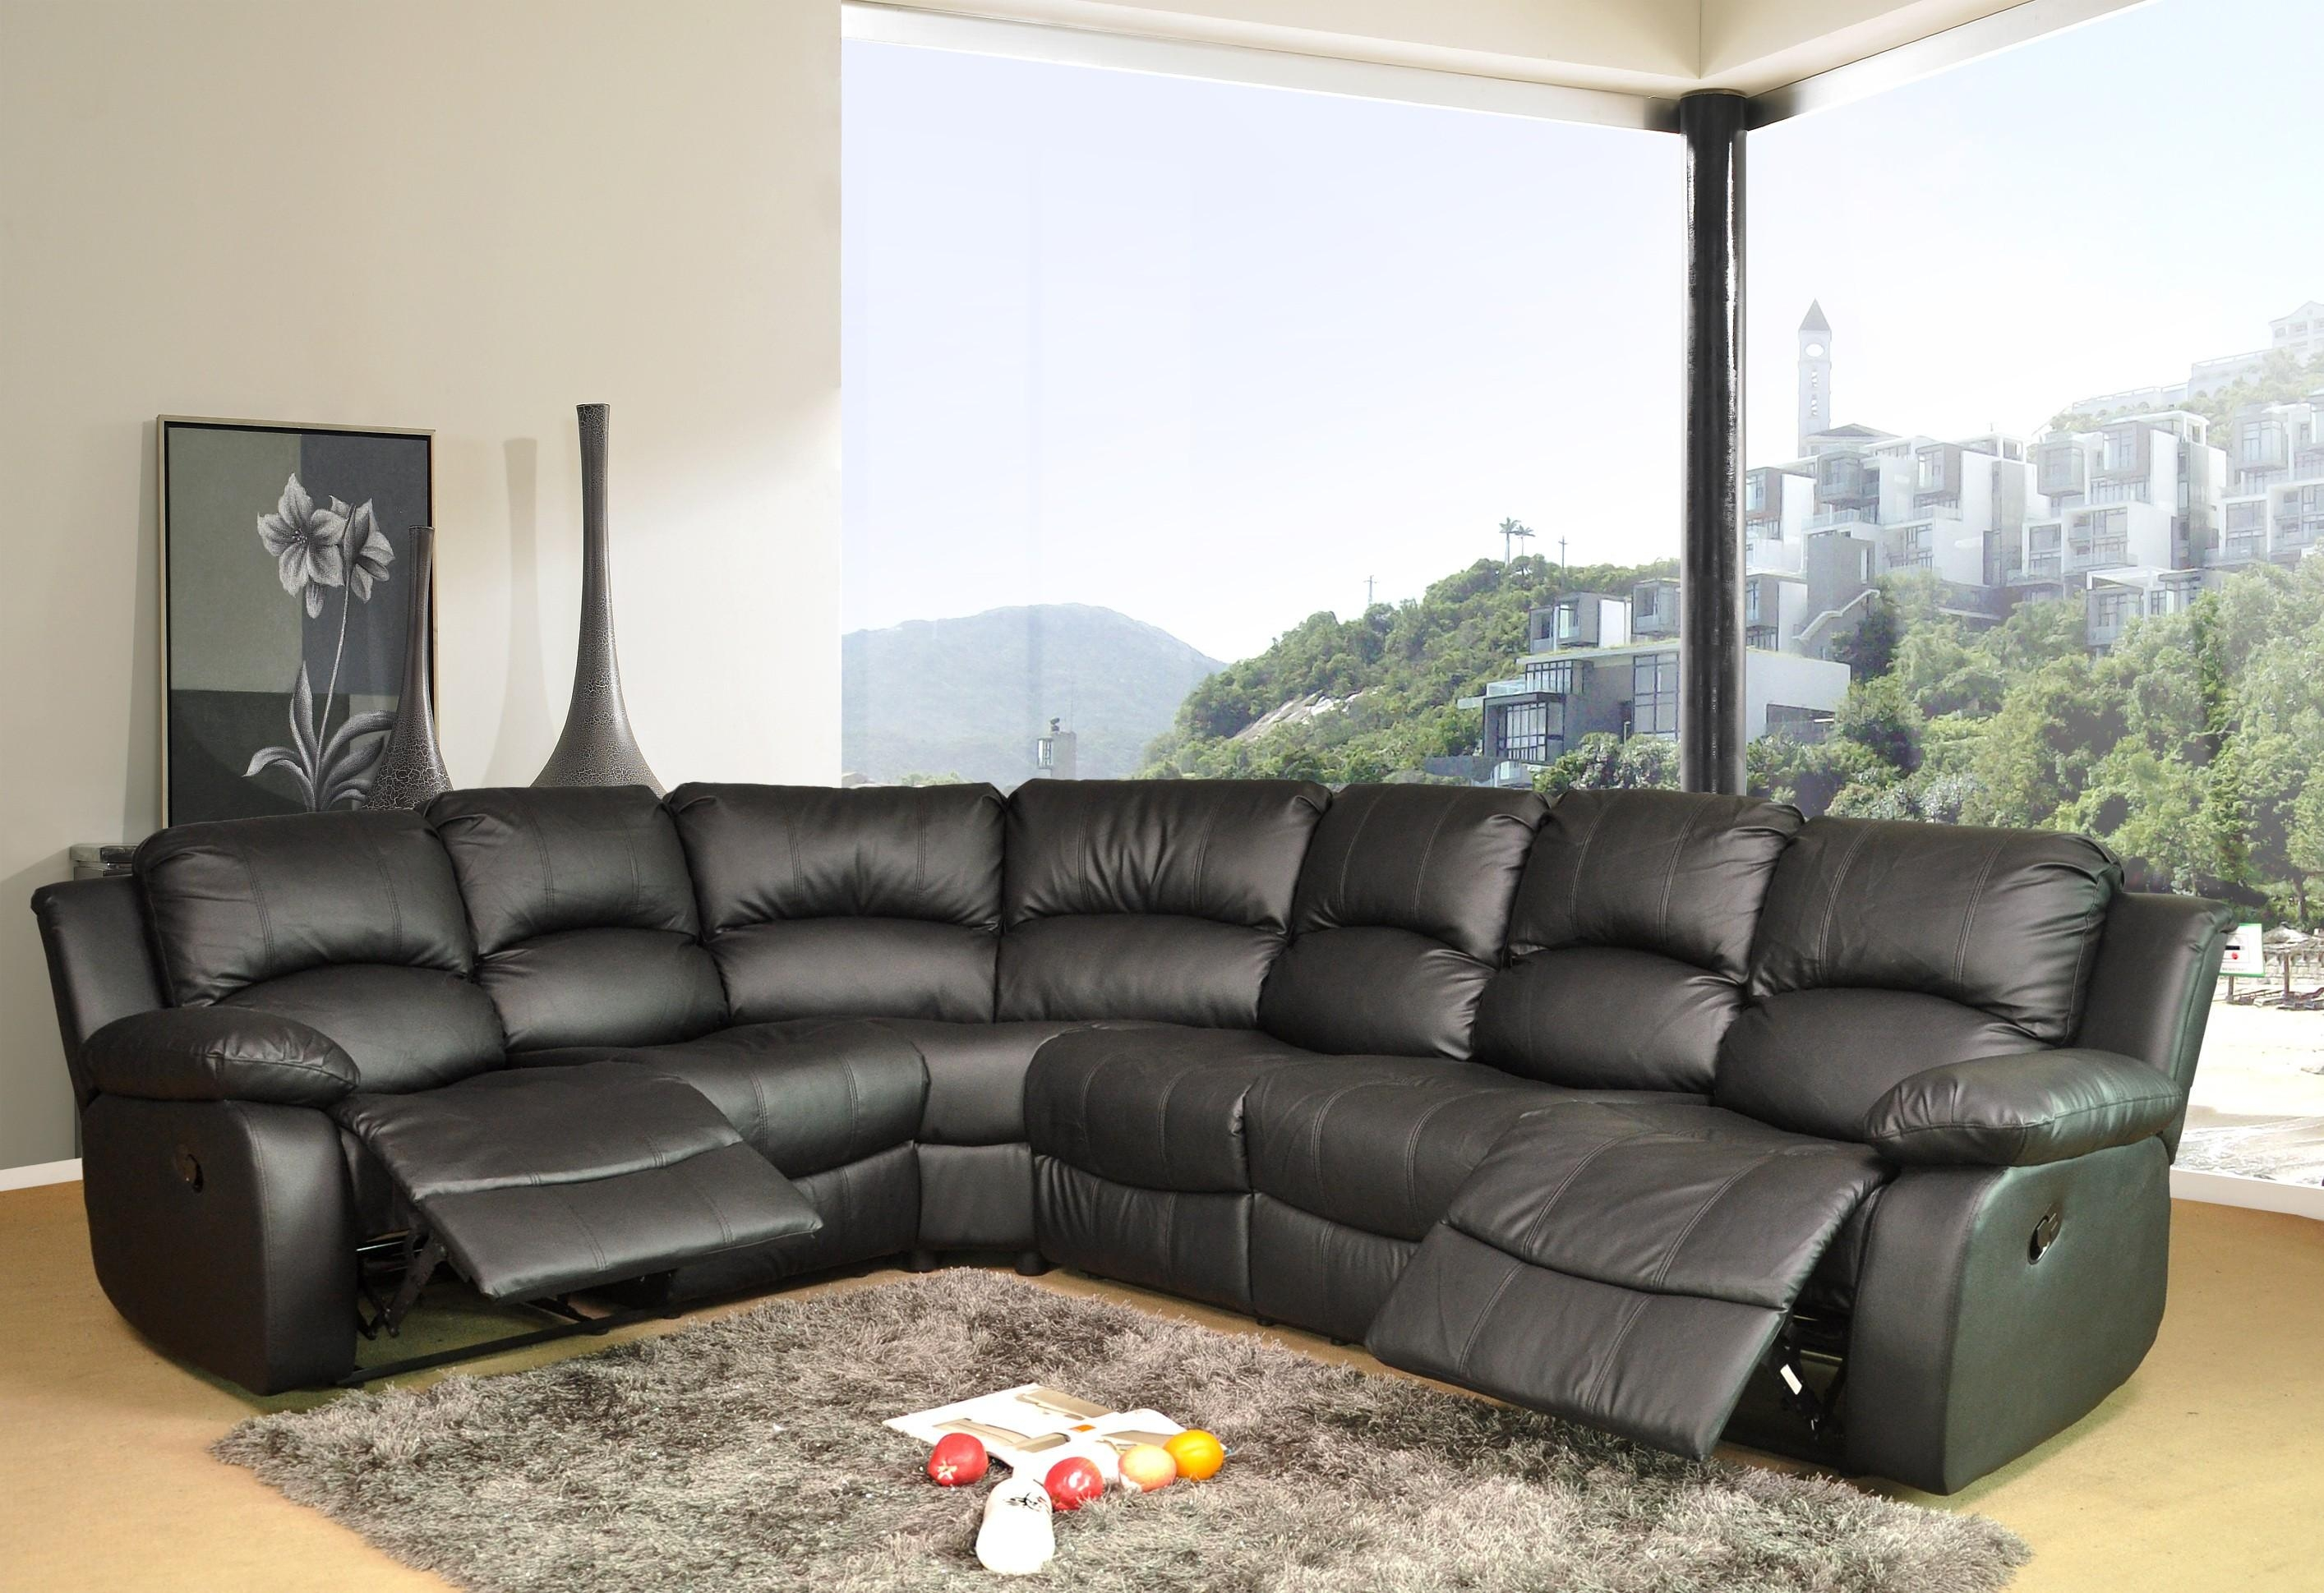 Black Leather Corner Sofa | Sofa Gallery | Kengire Inside Black Corner Sofas (Image 6 of 20)